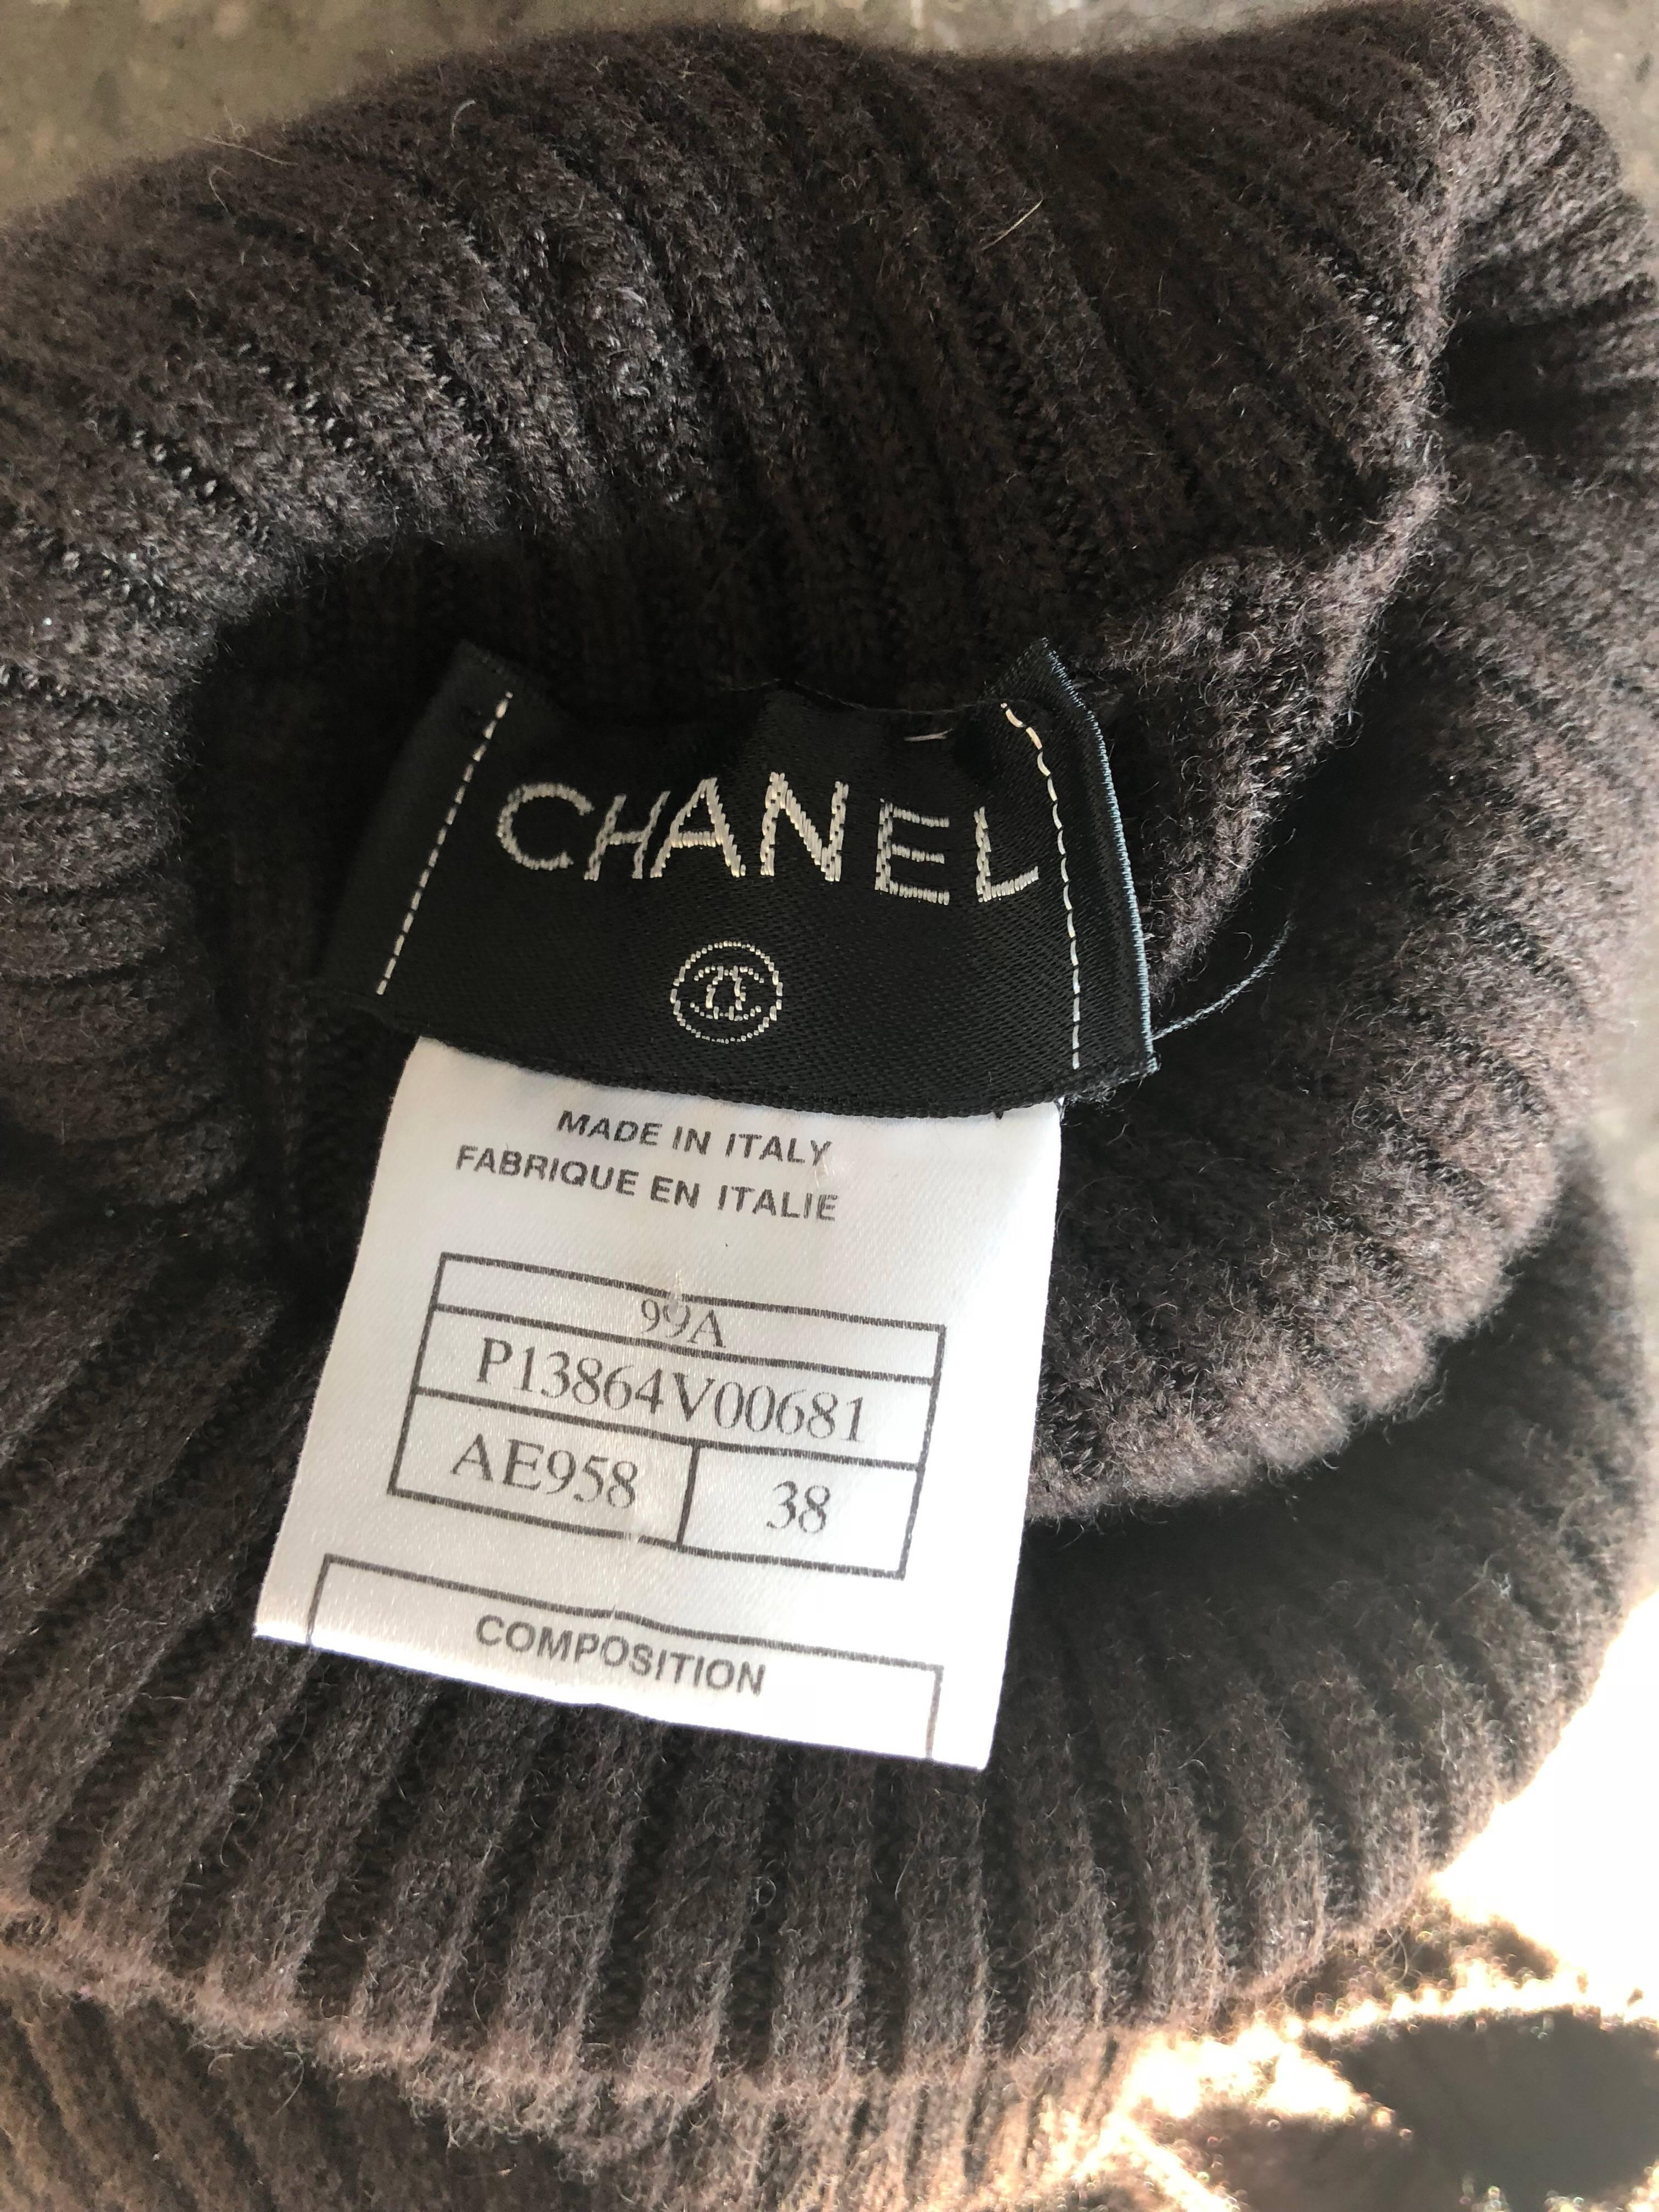 e61f6fa9f8 Chanel Vintage 99A Espresso Brown Cashmere Turtleneck 1990s 90s Sweater  Dress For Sale at 1stdibs